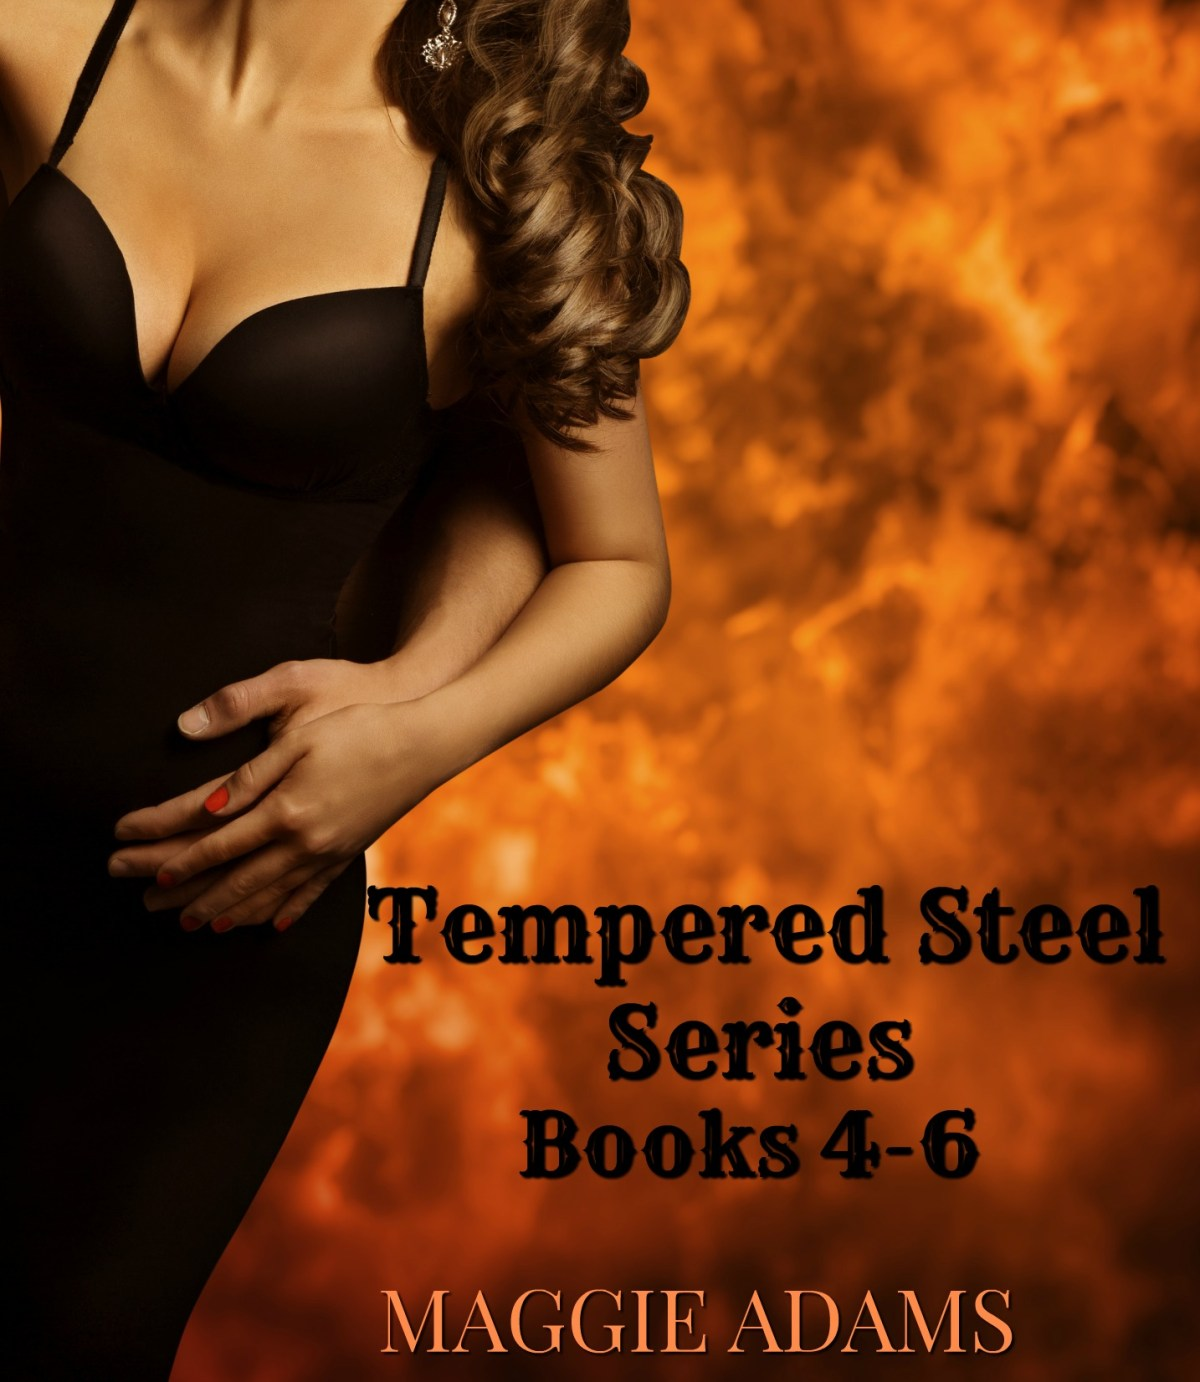 Tempered Steel Series Books 4-6